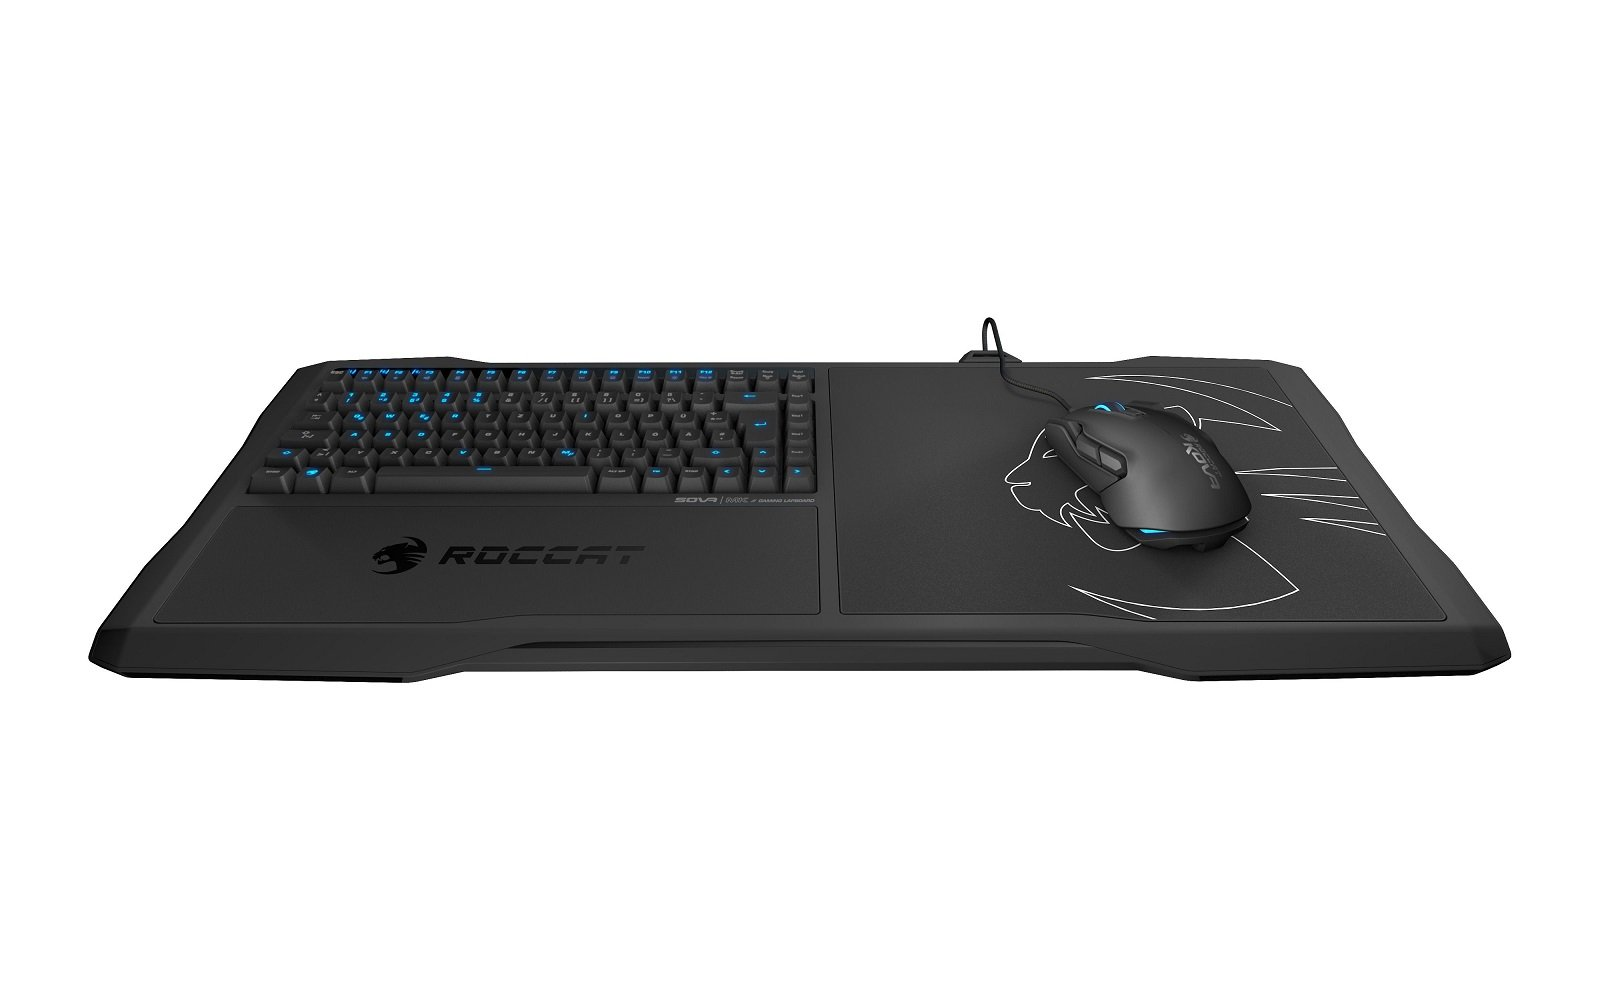 ROCCAT Sova Mechanical Gaming Lapboard for Gaming on the Couch with Cushion, Illuminated Backlit, Hotkeys, Programmable Keys, Quiet & Ergonomic, Brown Switch, for MMO & MOBA Games for PC, WOW – BLACK by ROCCAT